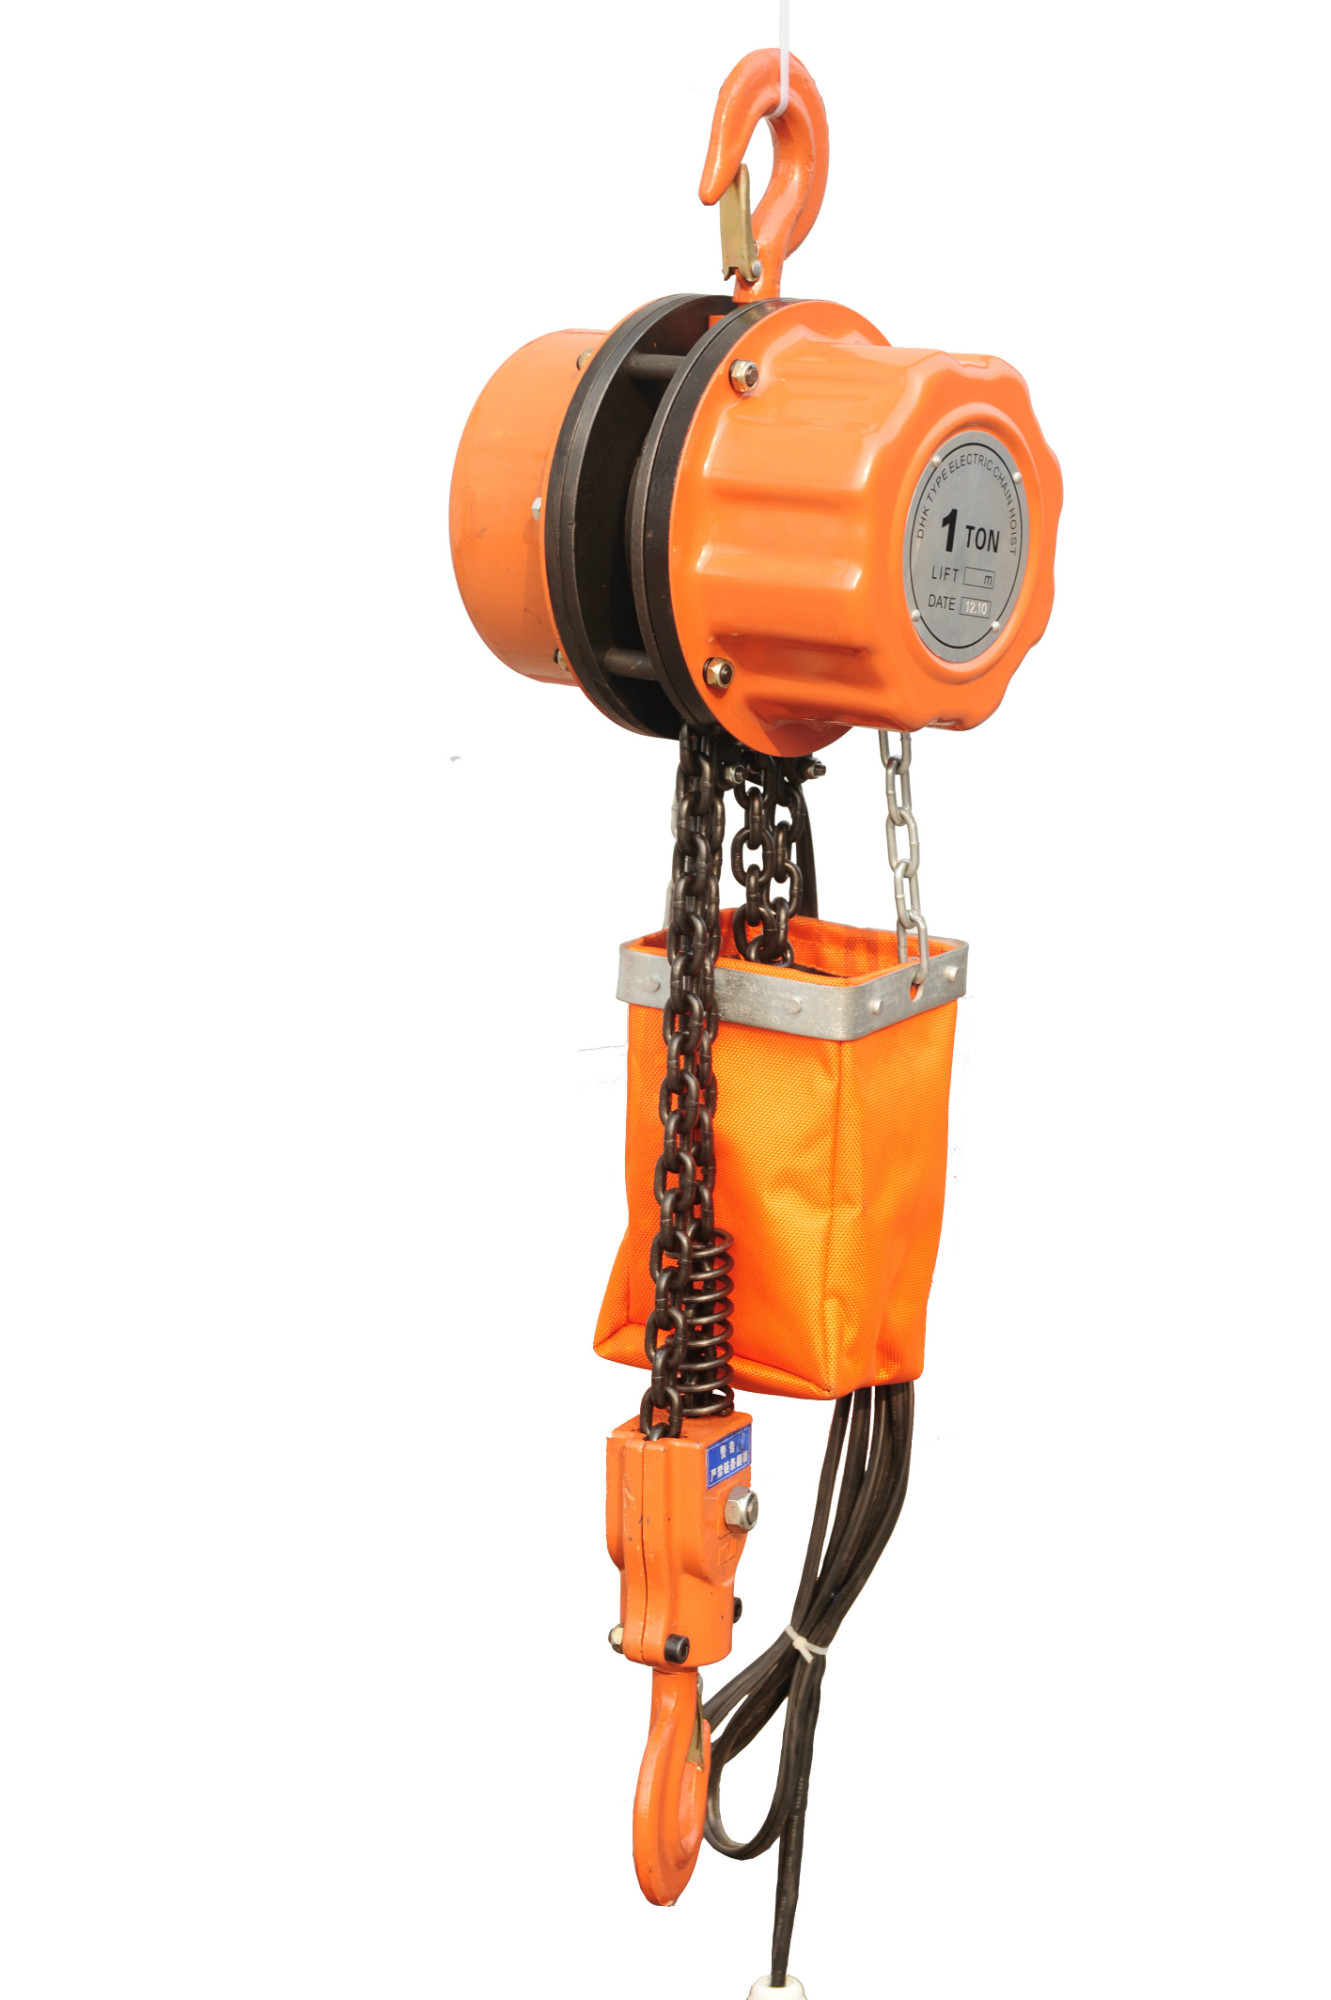 380v electric hoist